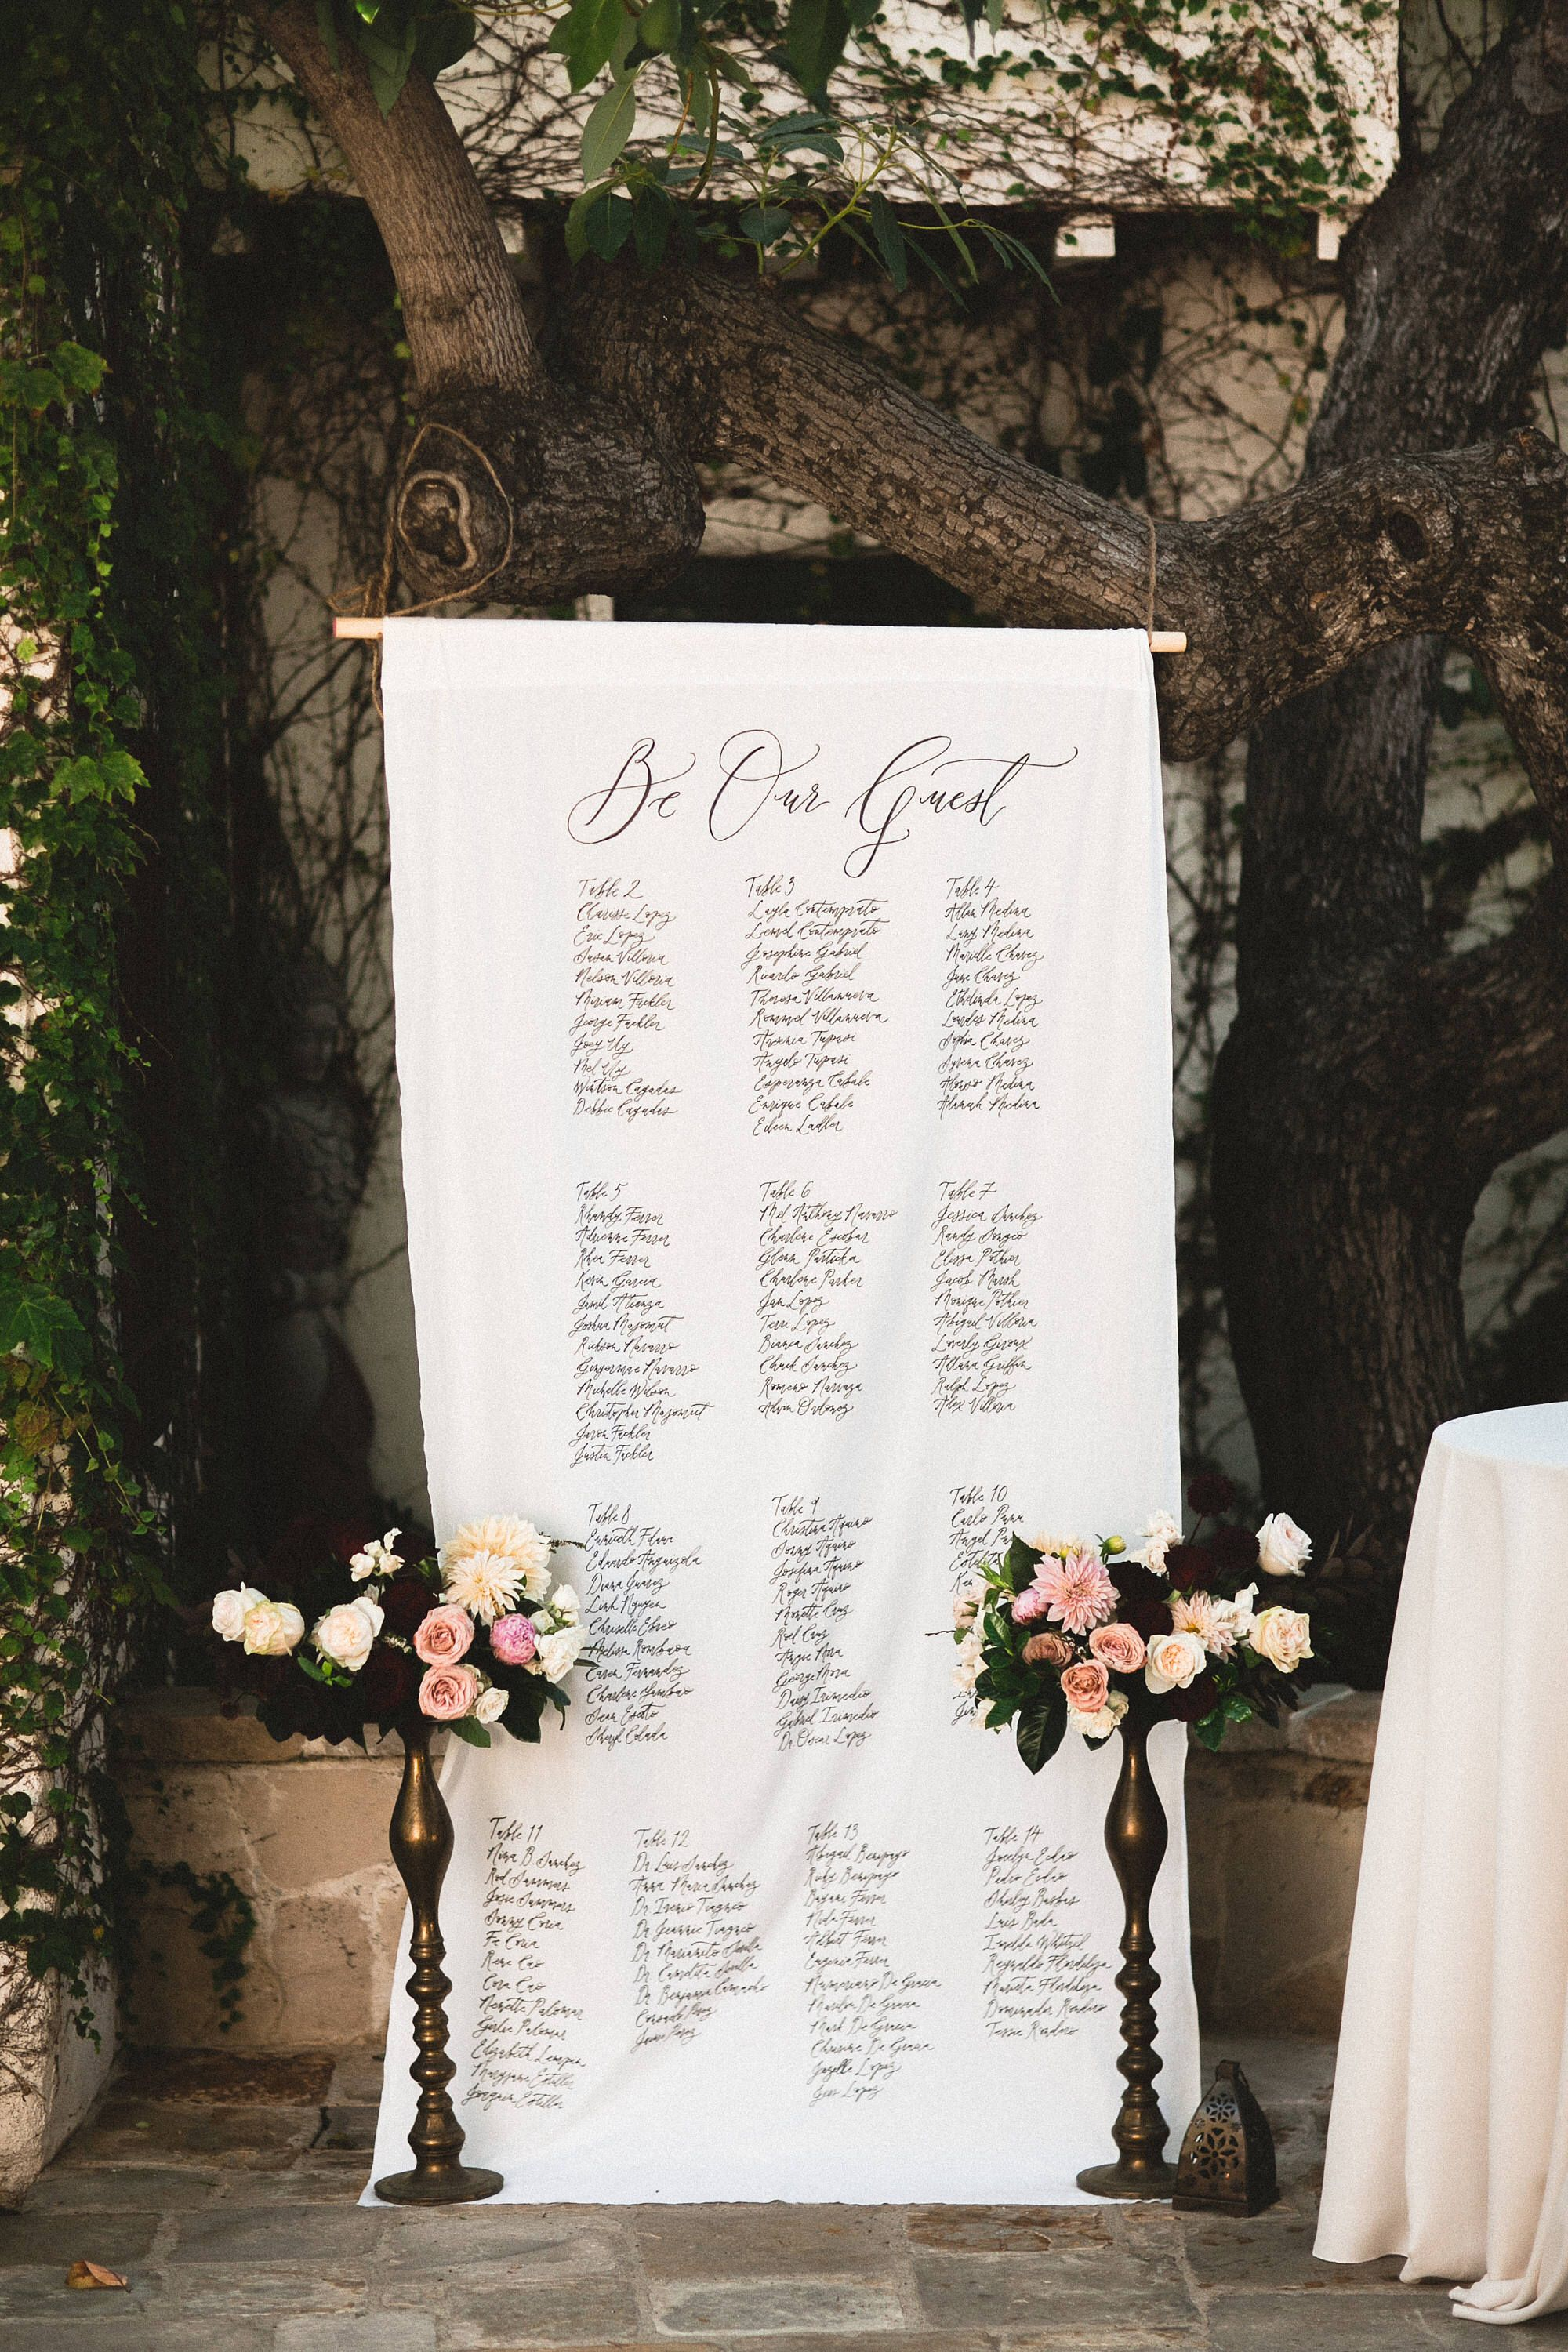 Handlettered Calligraphy Fabric Seating Chart Calligraphy Banner Backdrop By Ettiekim On Etsy Https Www Seating Chart Wedding Wedding Seating Plan Wedding